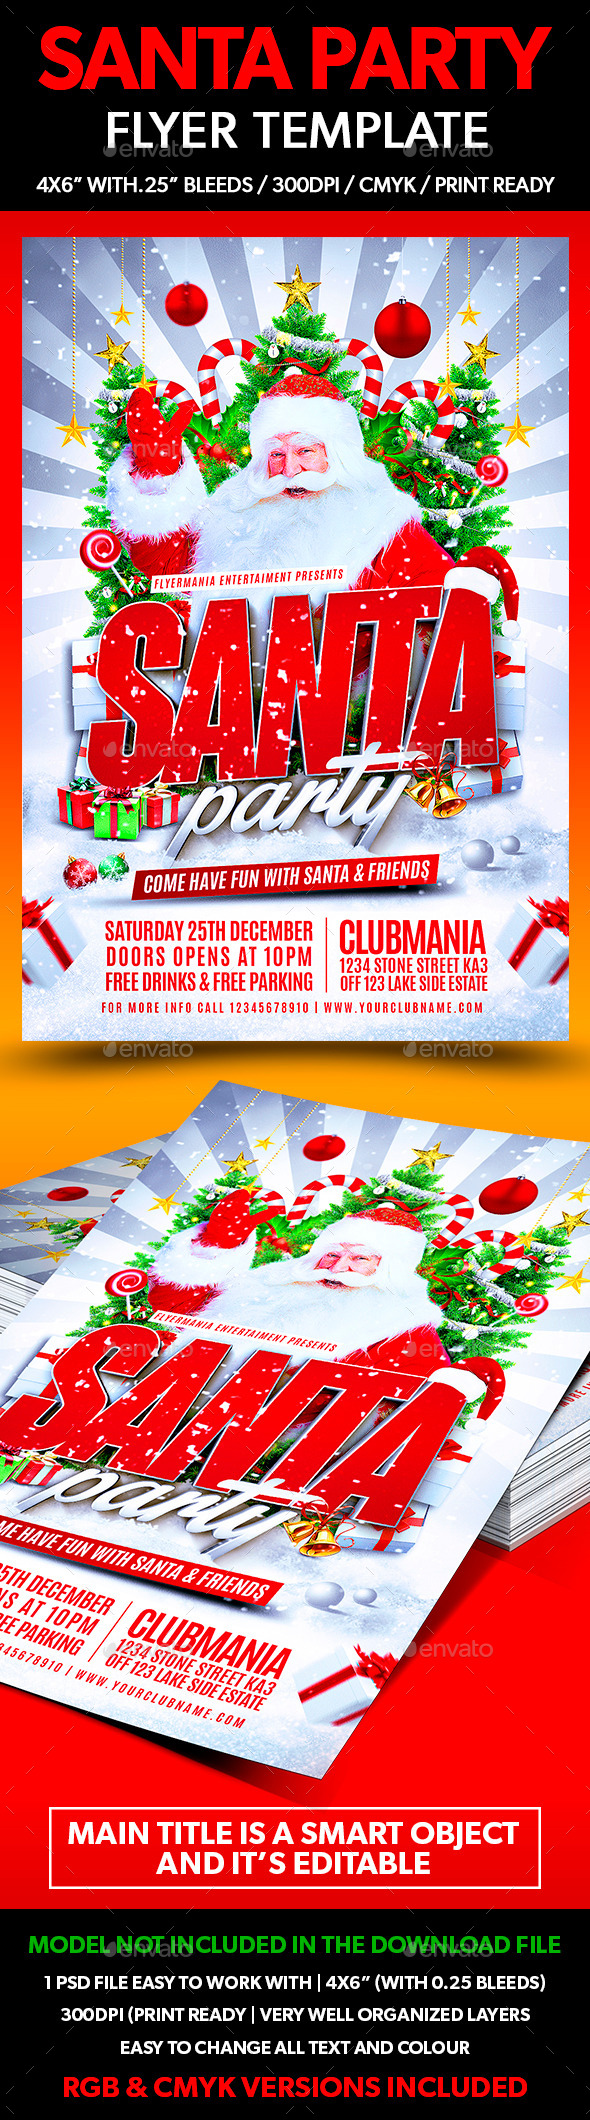 Santa Party Flyer Template - Flyers Print Templates